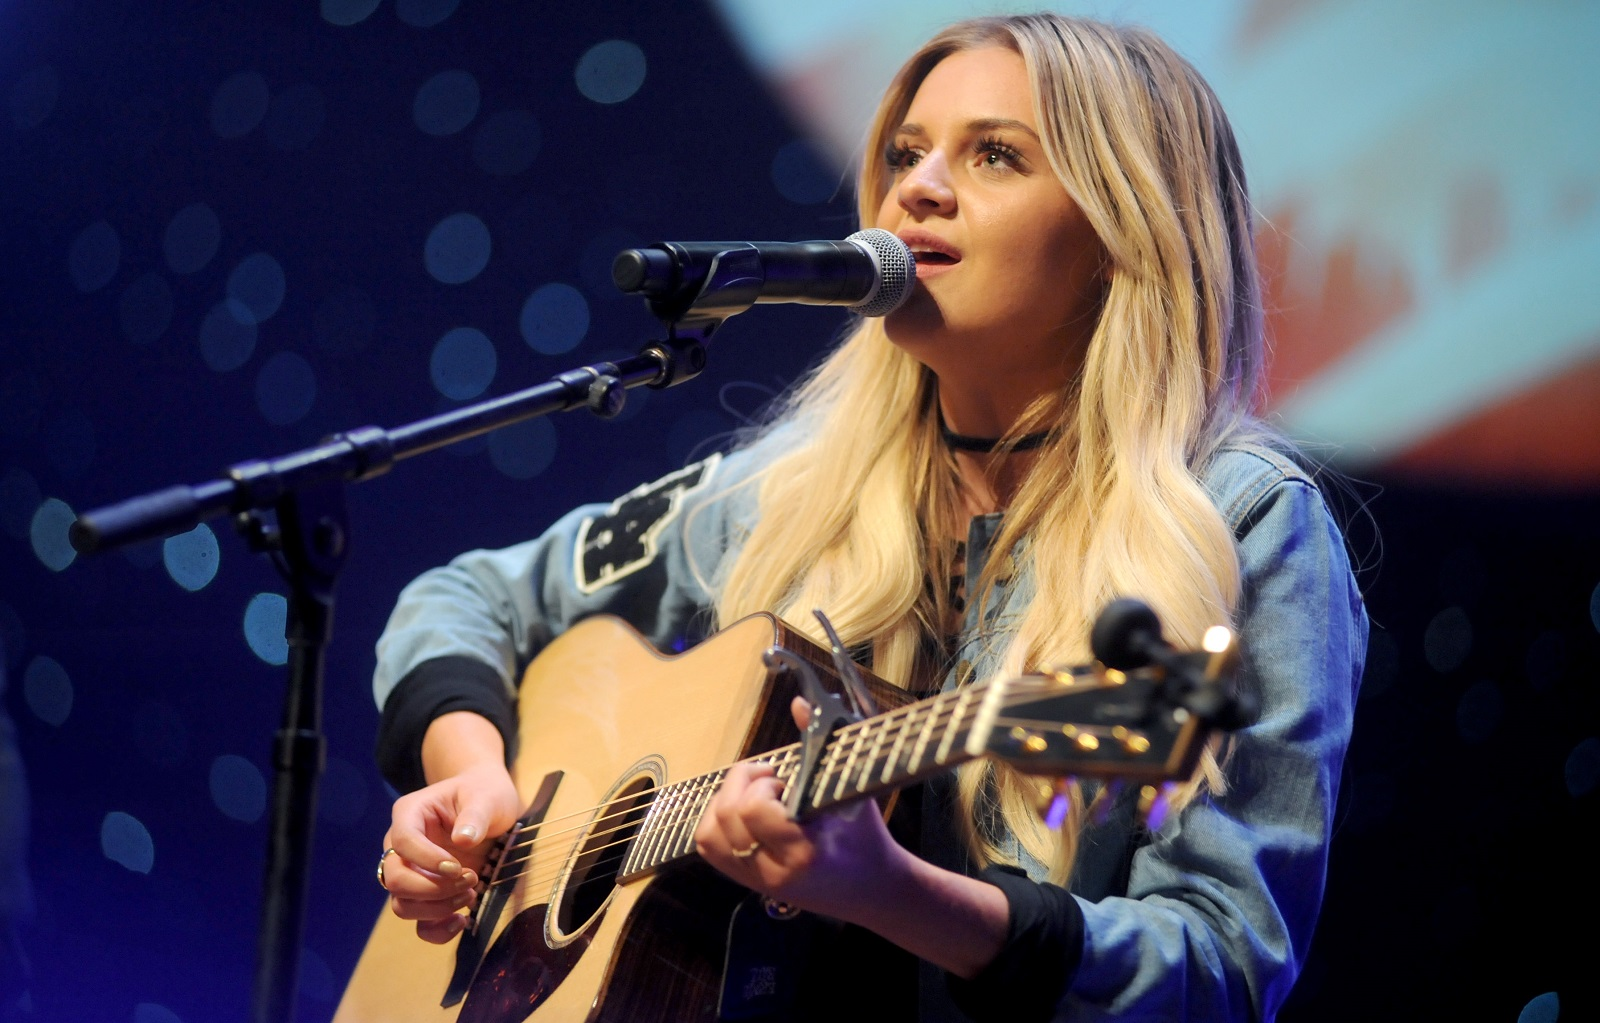 Kelsea Ballerini is playing a sold-out show Dec. 3 at the Town Ballroom. (Getty Images)